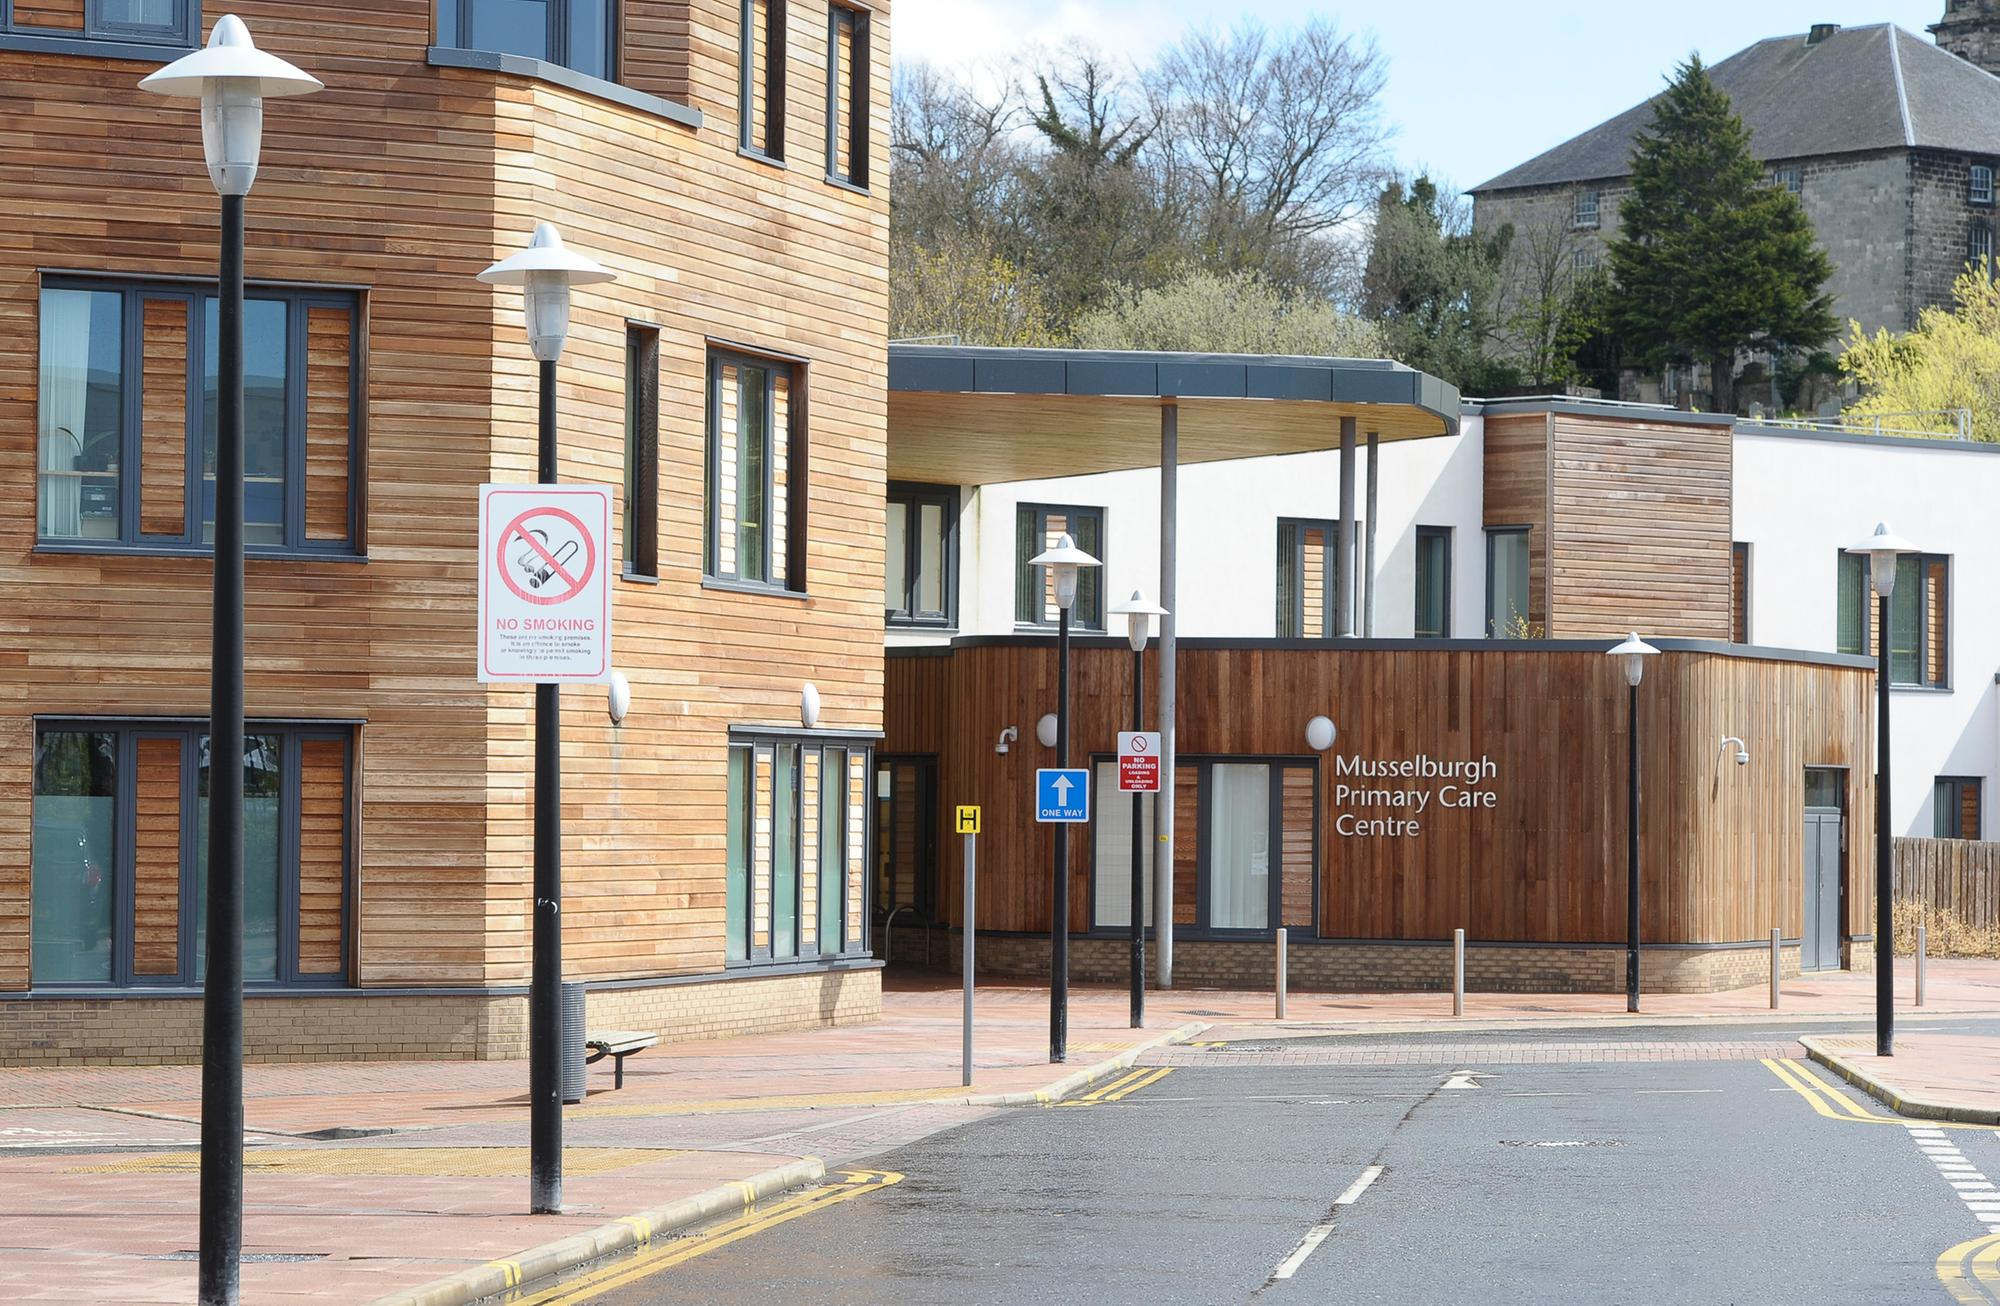 A Lothian patient tried 400 times in one day to contact her medical practice – and still did not get through